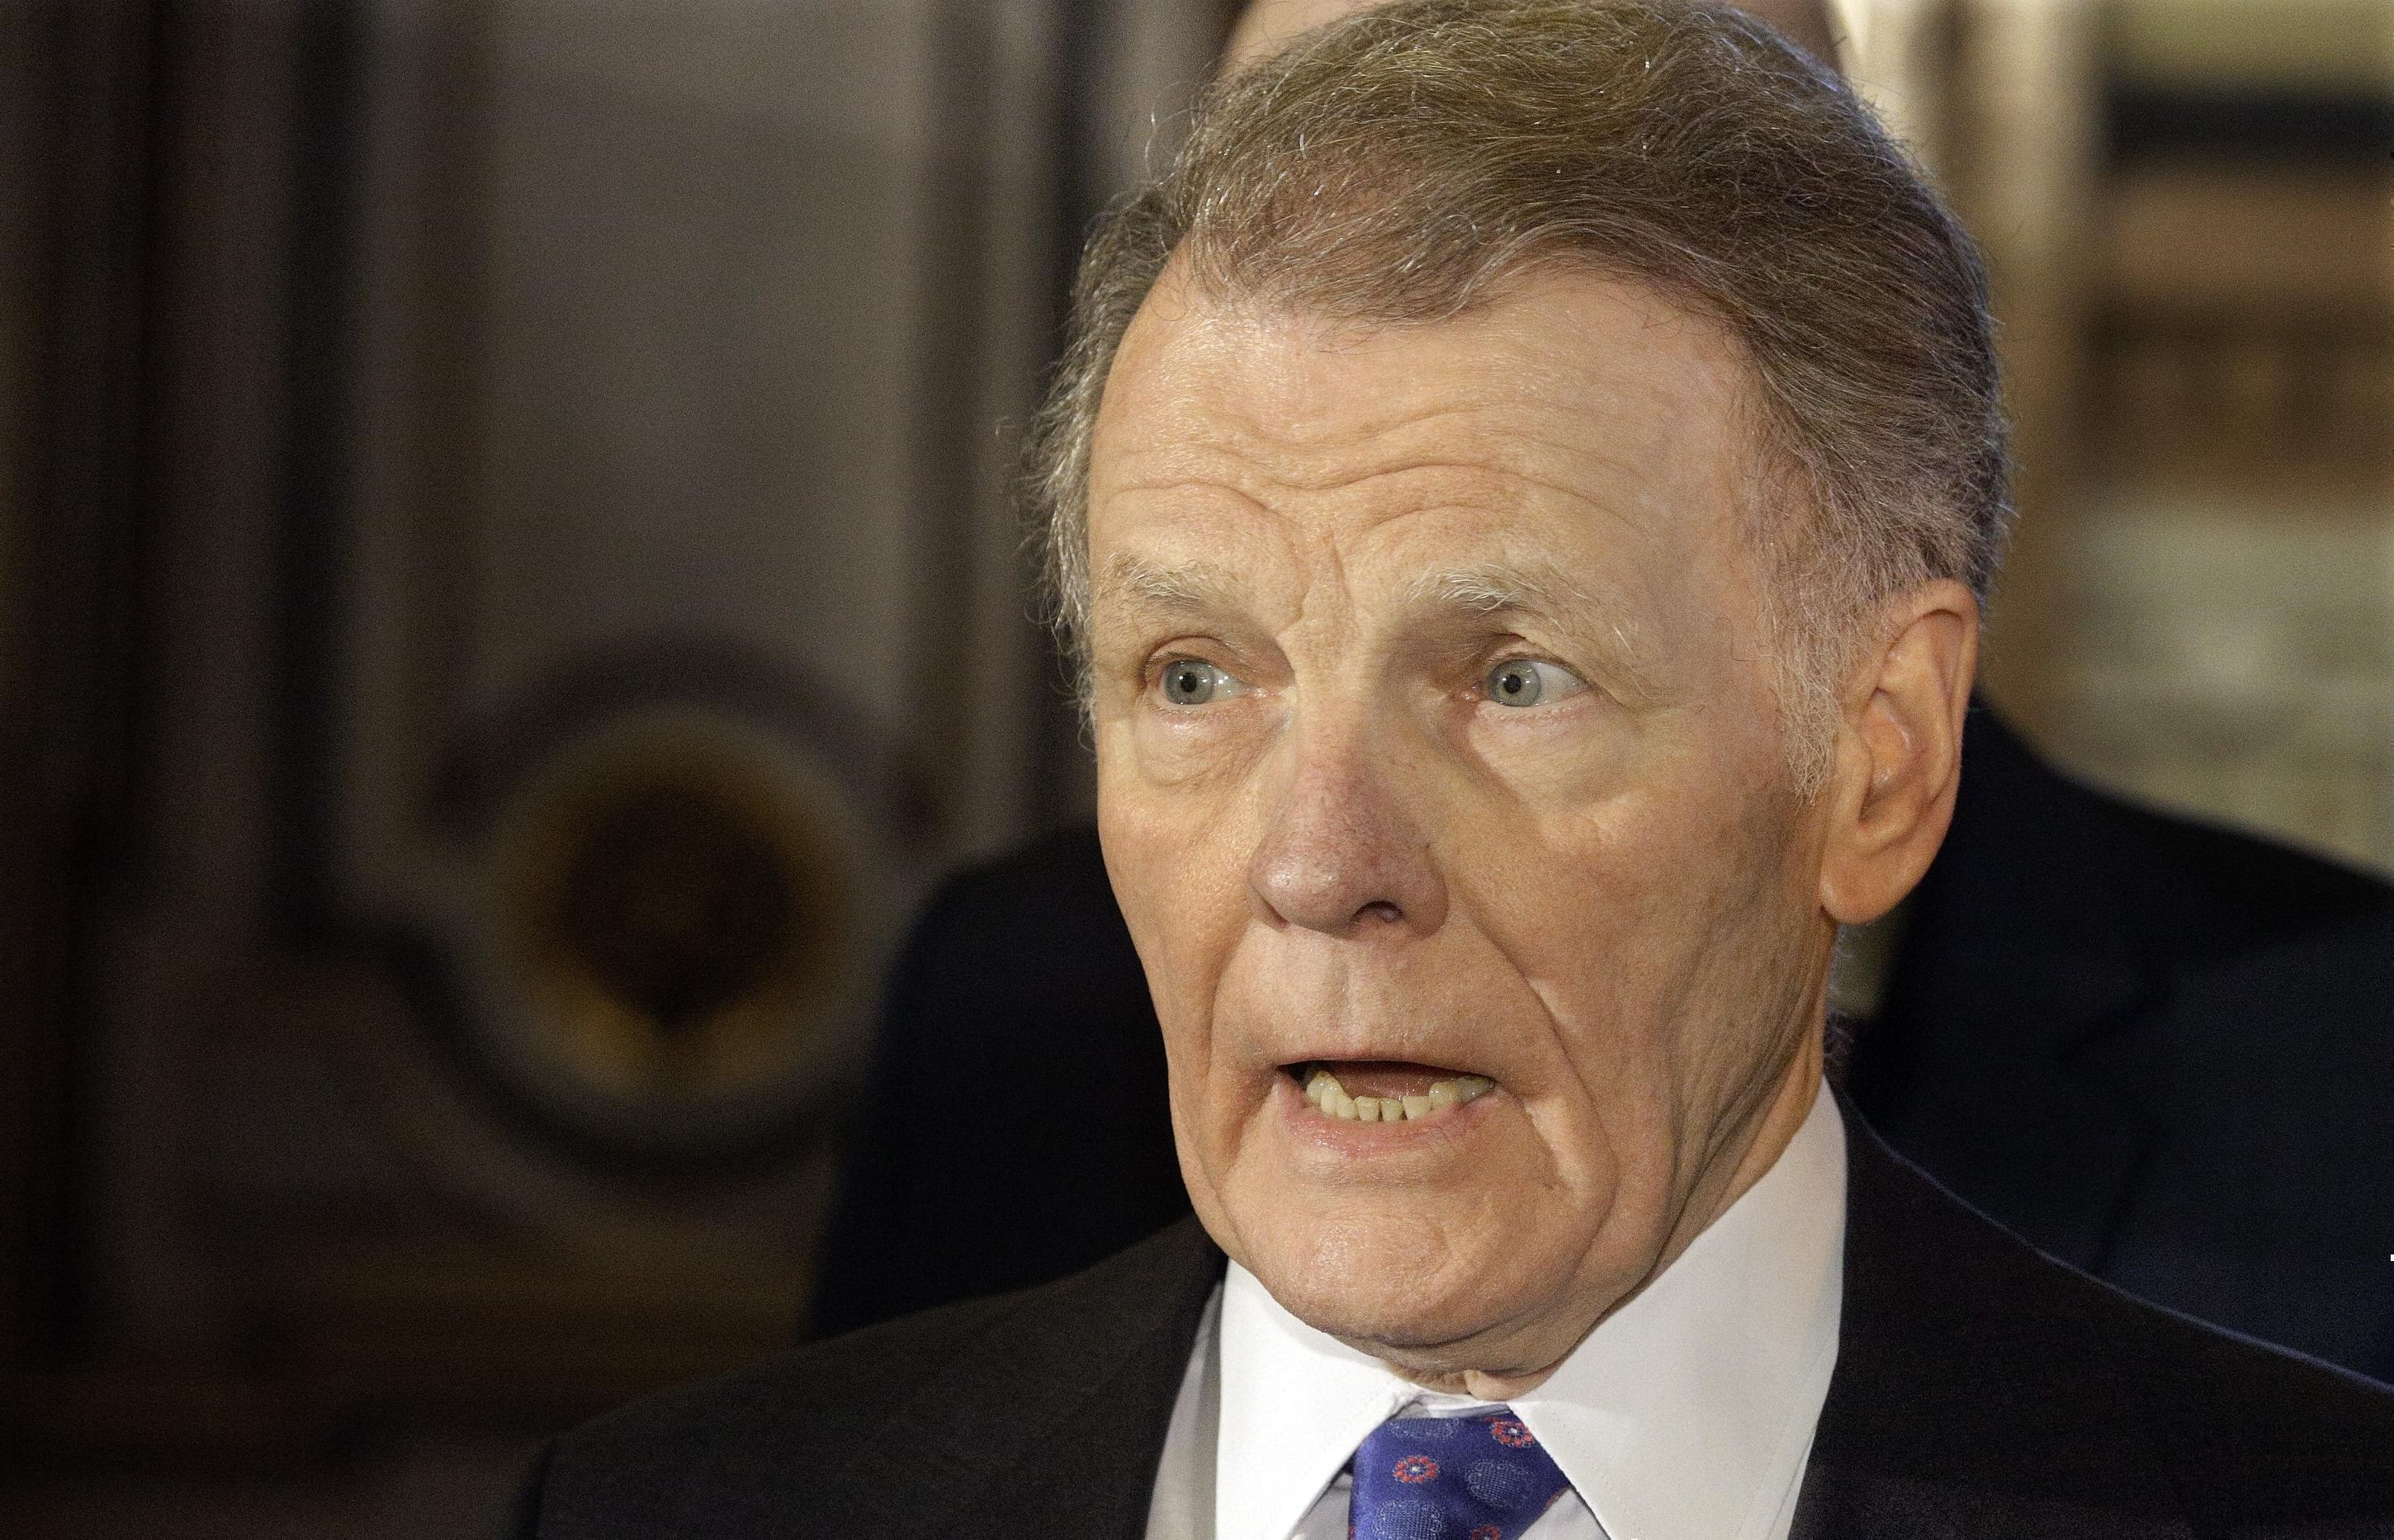 In this Nov. 30, 2016 file photo, Illinois Speaker of the House Michael Madigan, D-Chicago, speaks to reporters in Springfield, Ill.